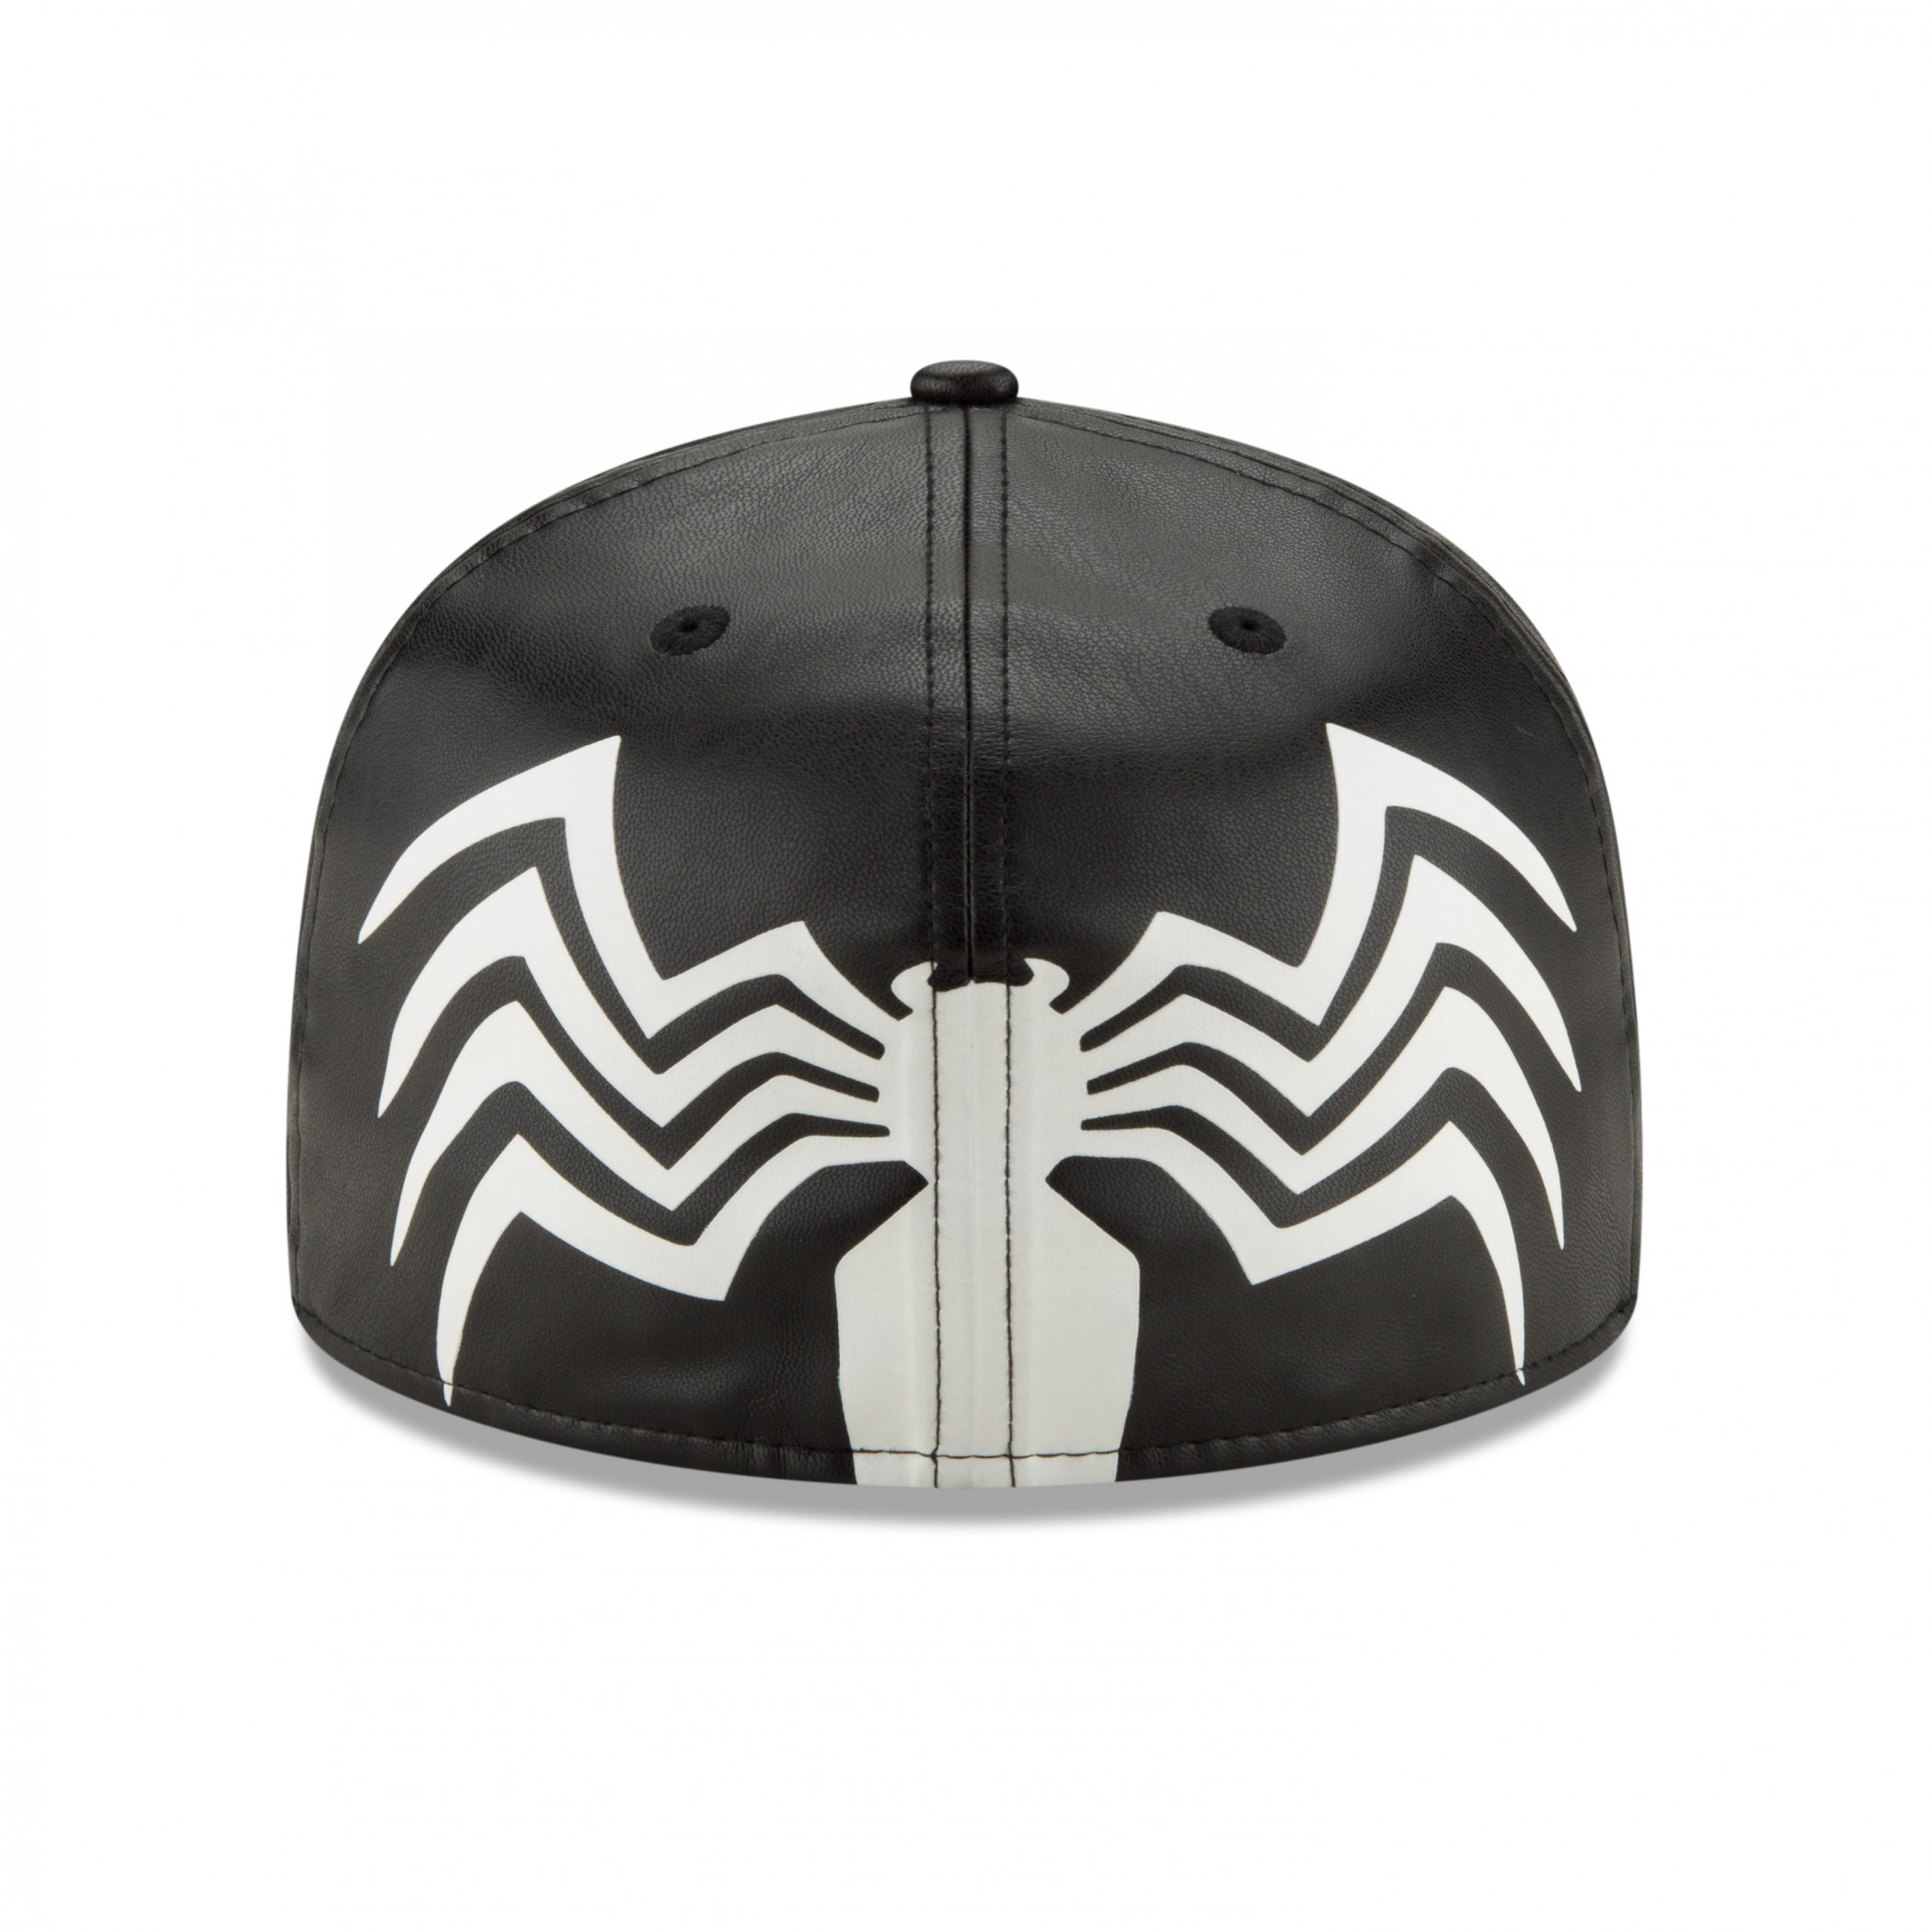 Venom Character Armor w/Carnage Underlining New Era 59Fifty Fitted Hat